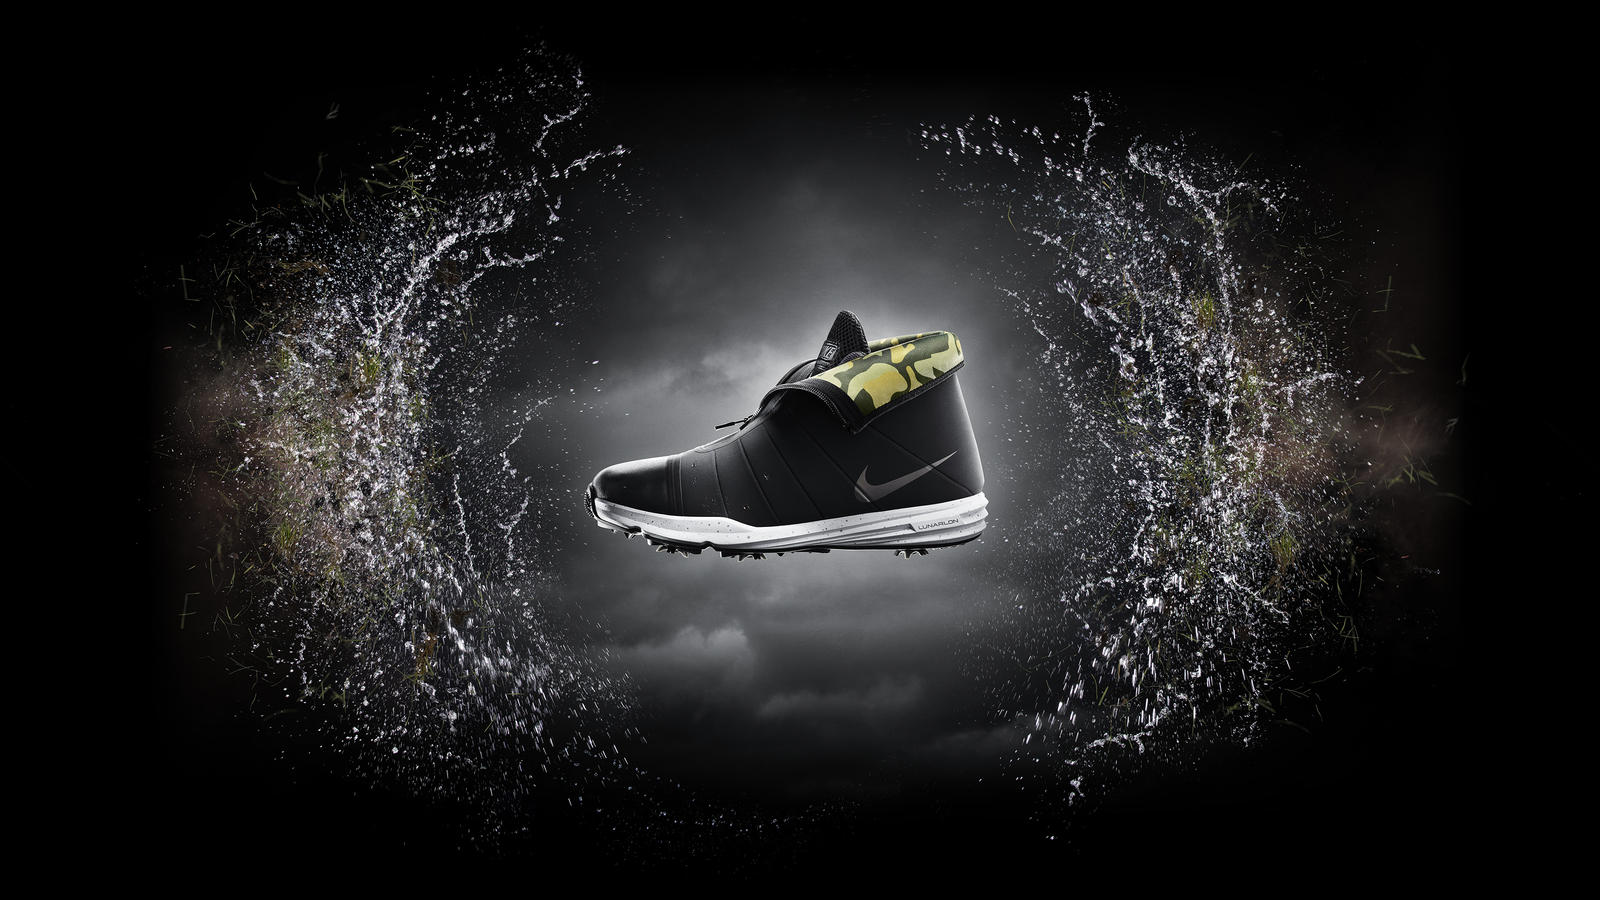 Nike's Lunar Bandon 3 is designed for all weathers